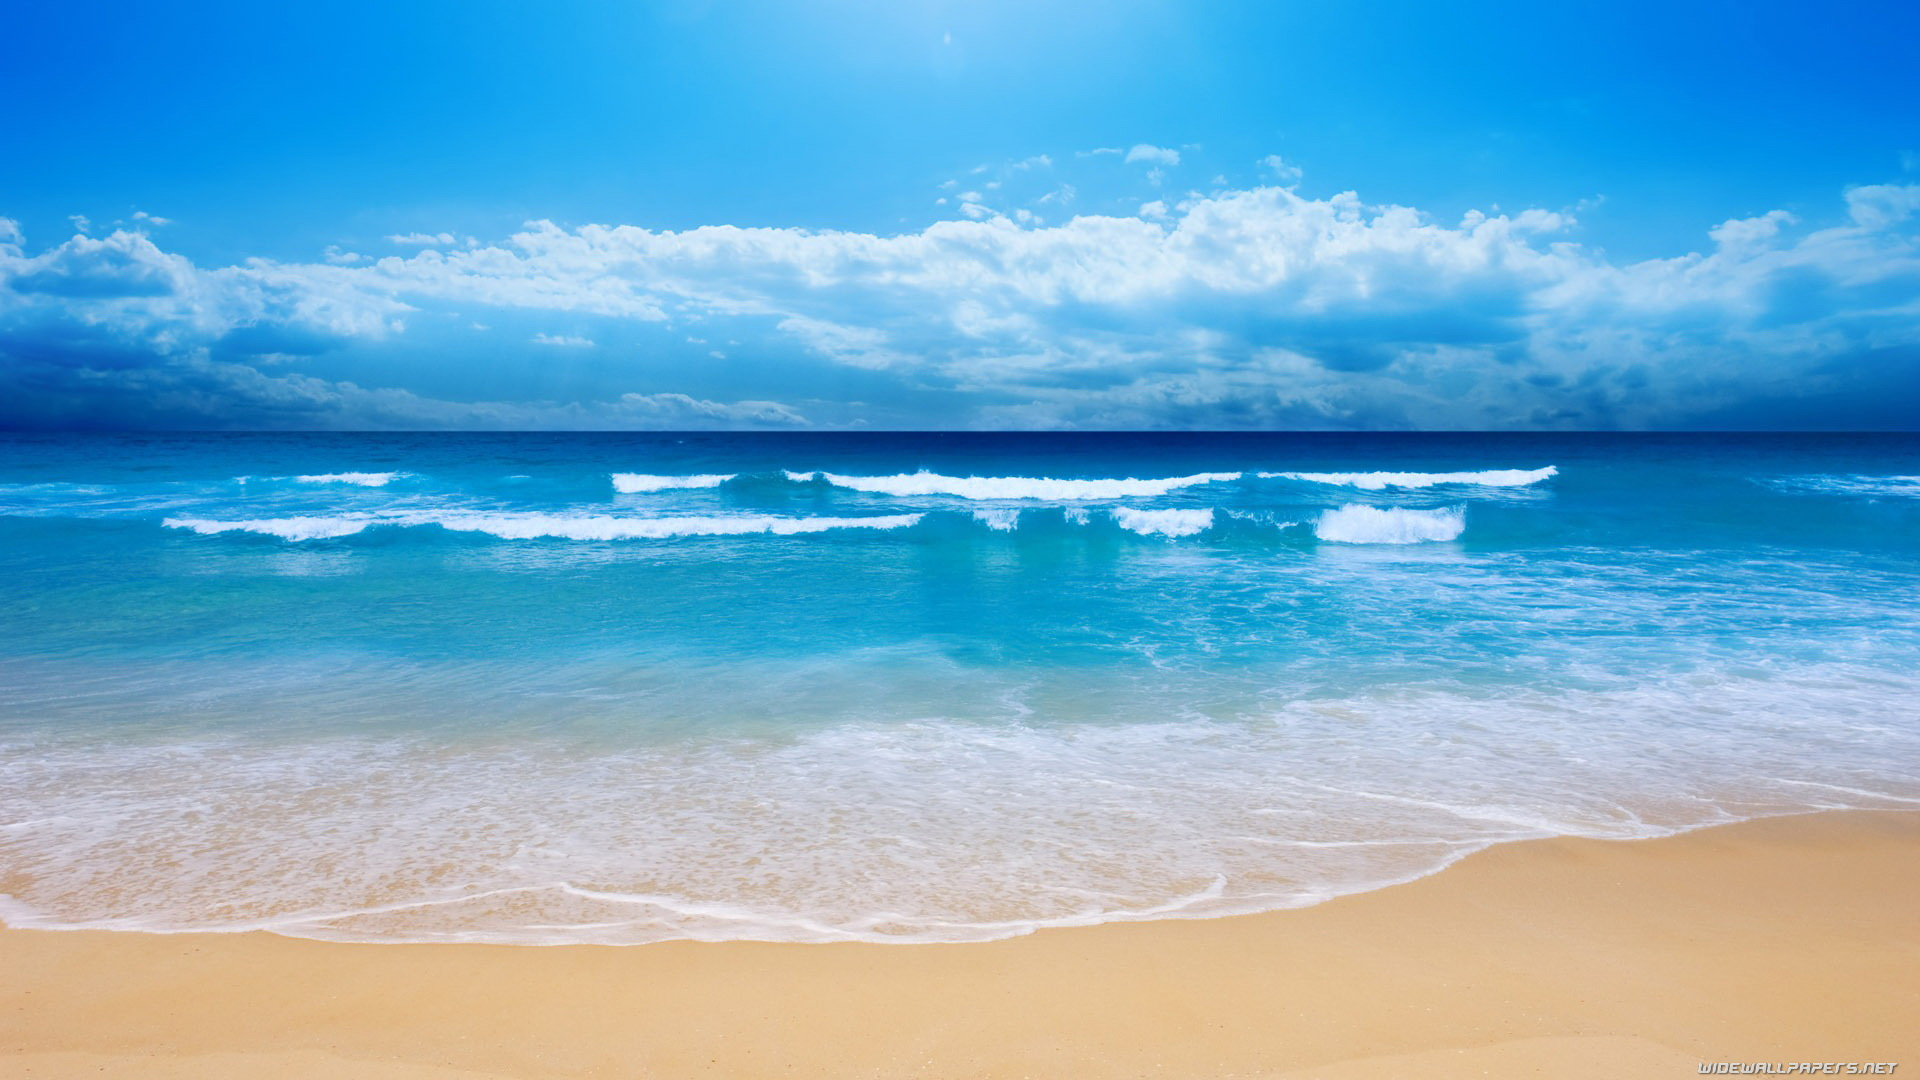 41 Full Hd Beach Wallpaper On Wallpapersafari Choose from a curated selection of 1920x1080 wallpapers for your mobile and desktop screens. full hd beach wallpaper on wallpapersafari